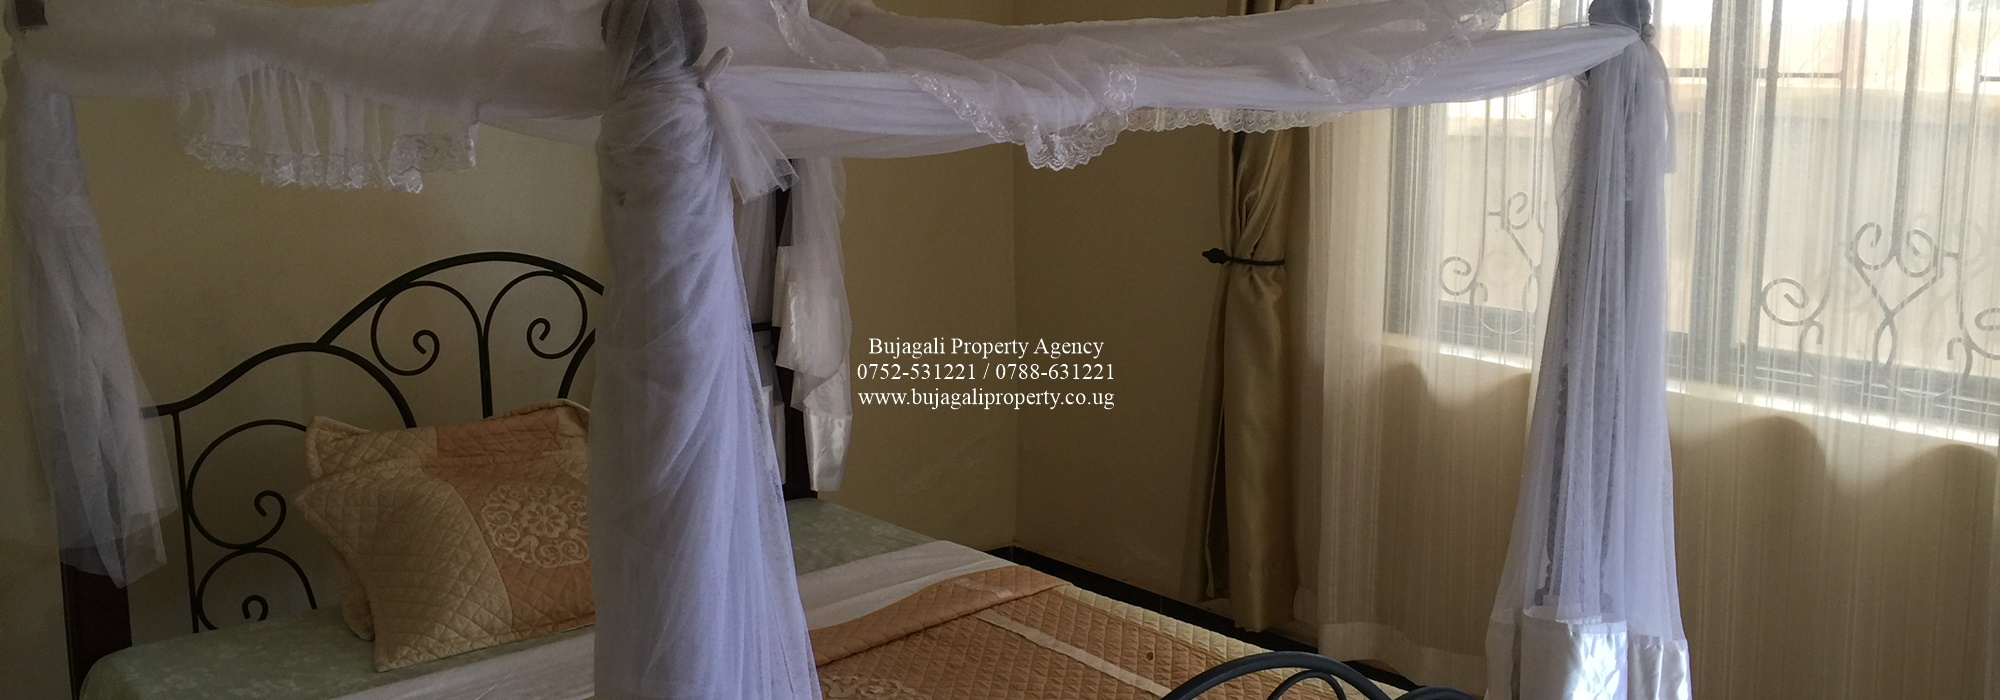 NEW GUESTHOUSE AT BUGEMBE JINJA IS NOW FOR RENT